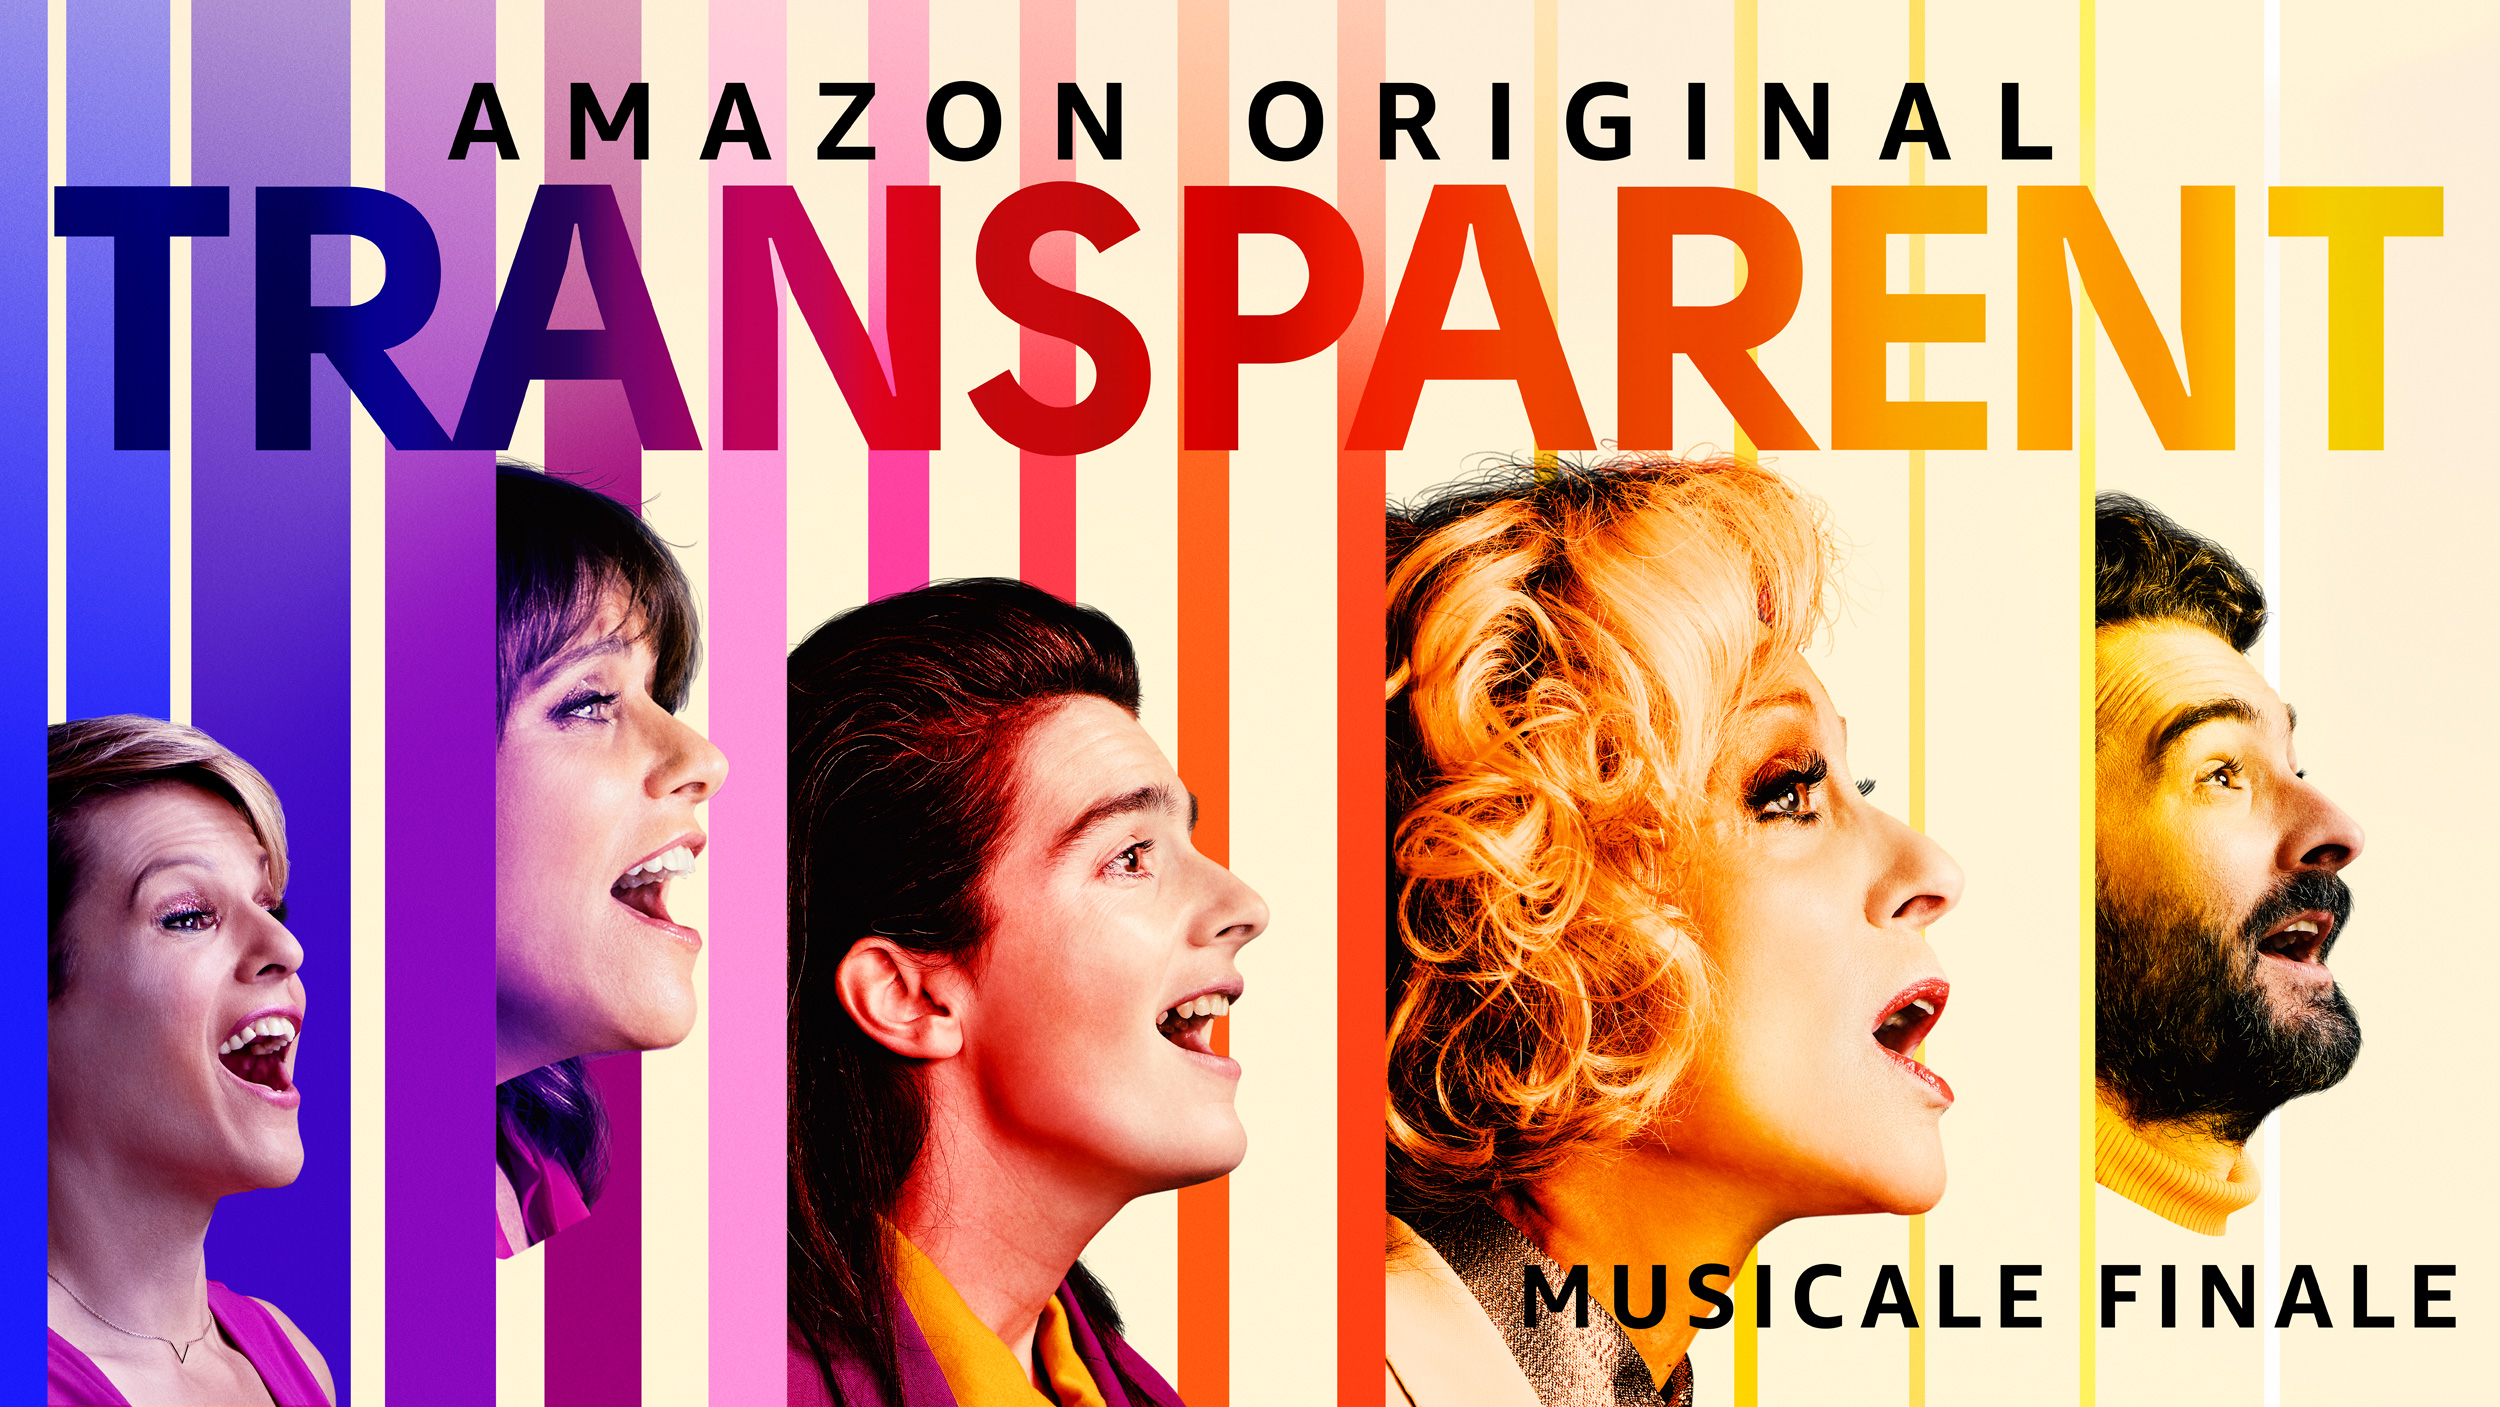 Transparent | Amazon Studios